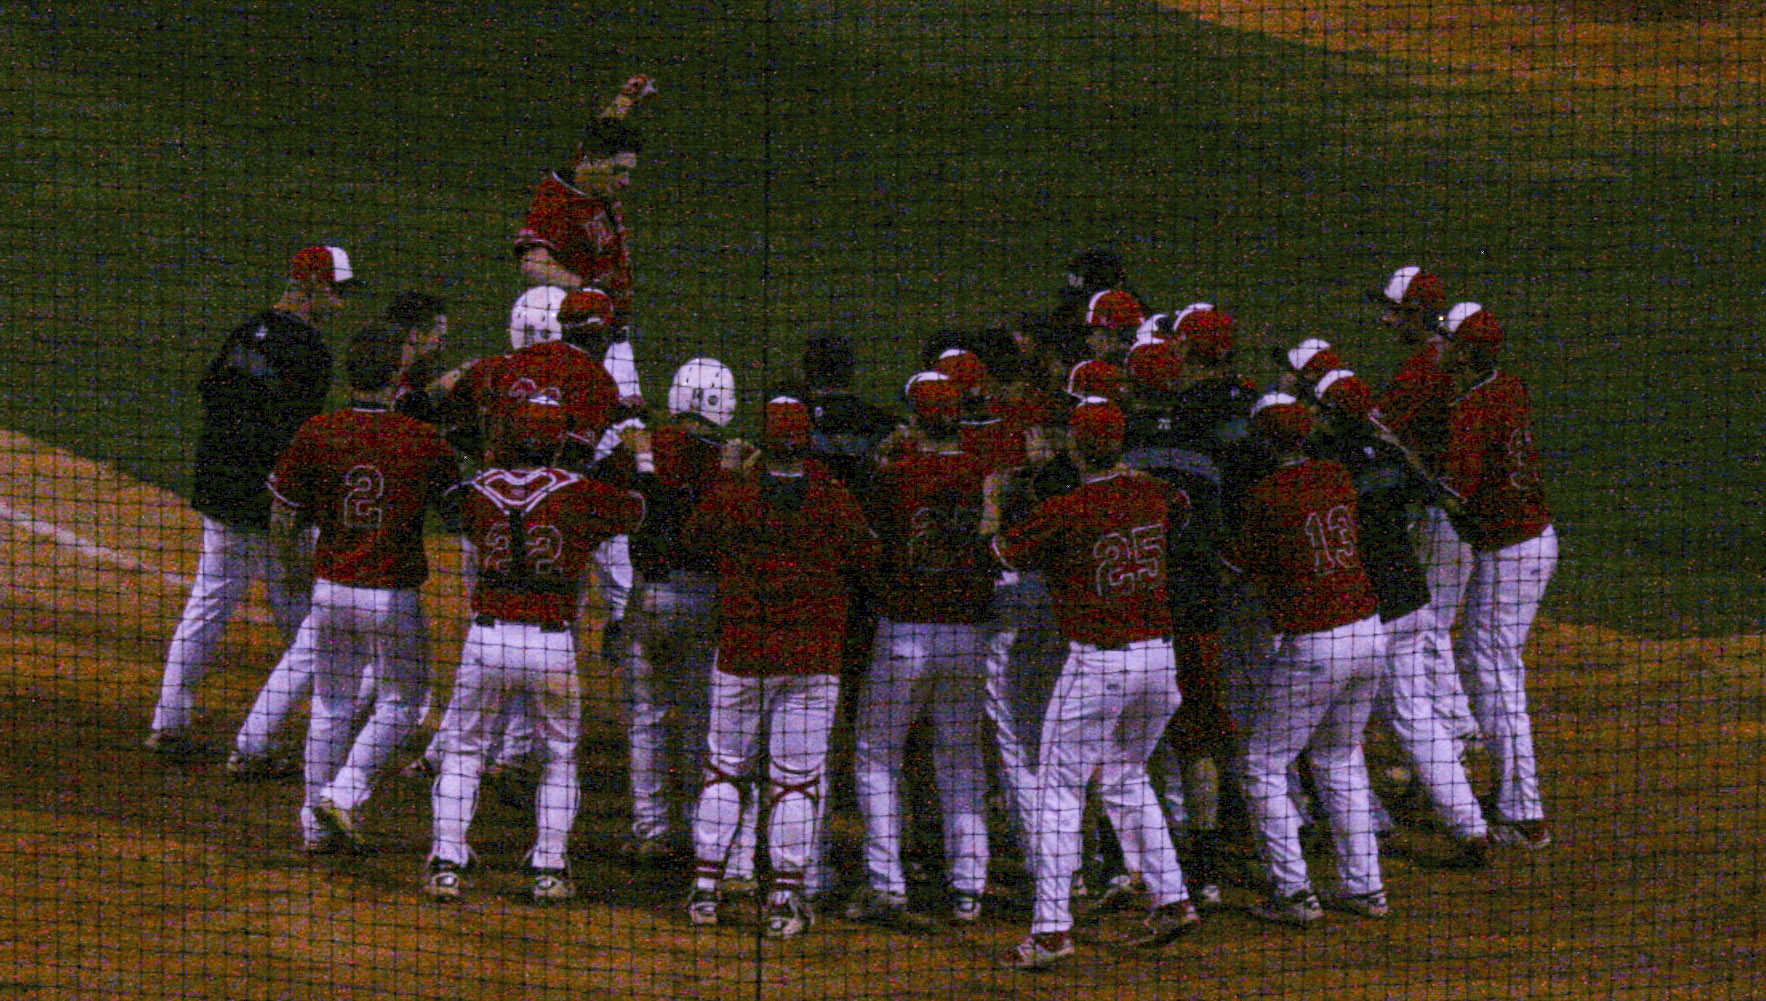 Kyle Benyo hit a walk-off home run vs. Bowling Green on April 19, 2017